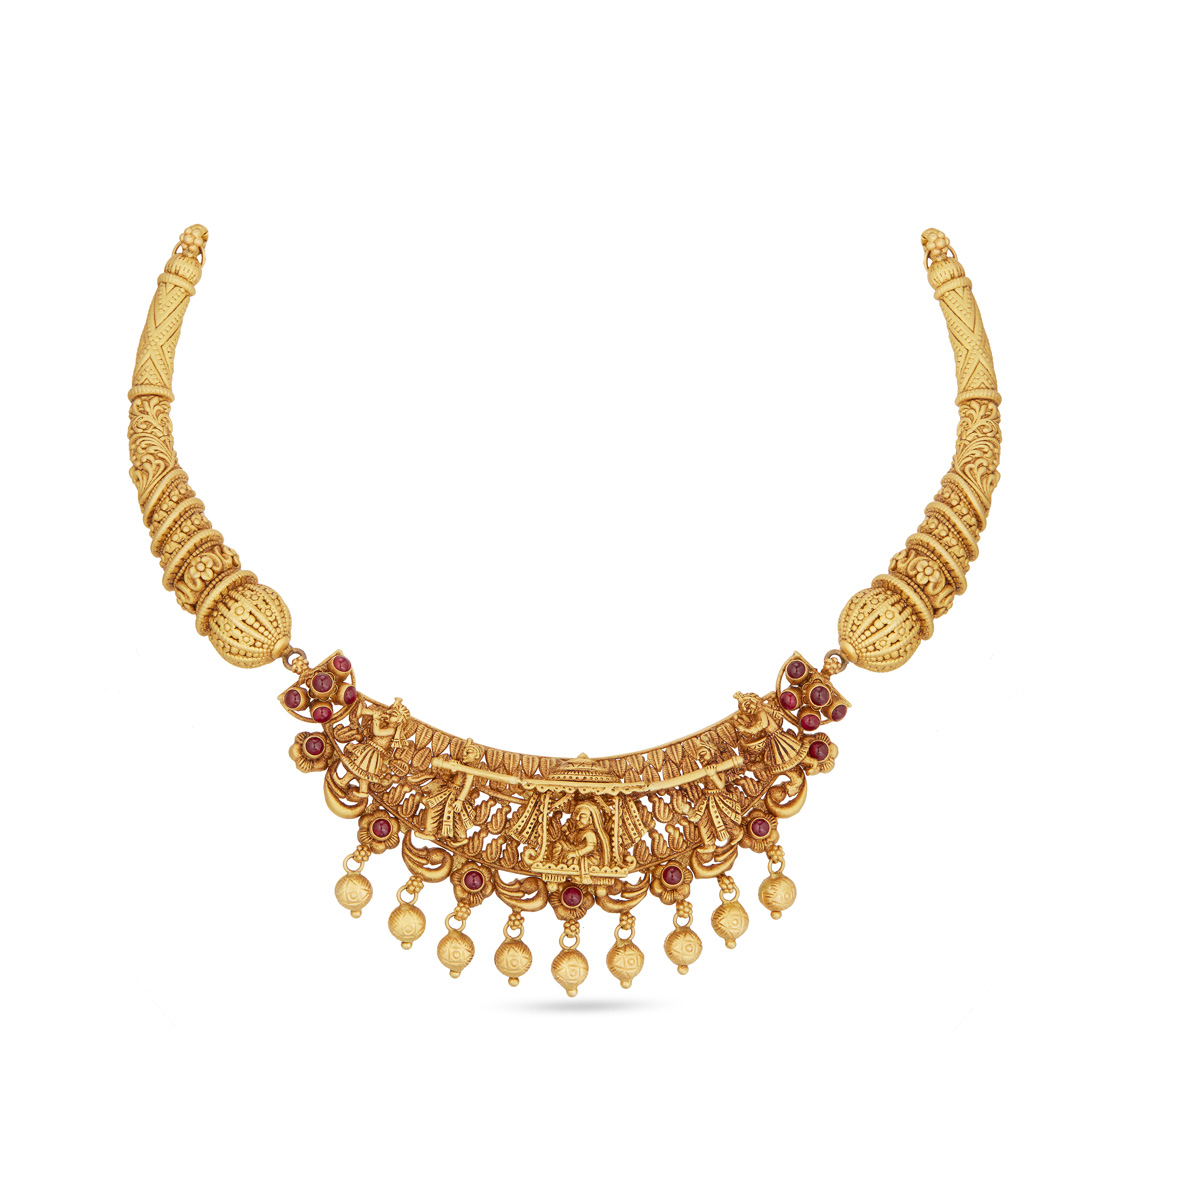 Bellissimo short necklace